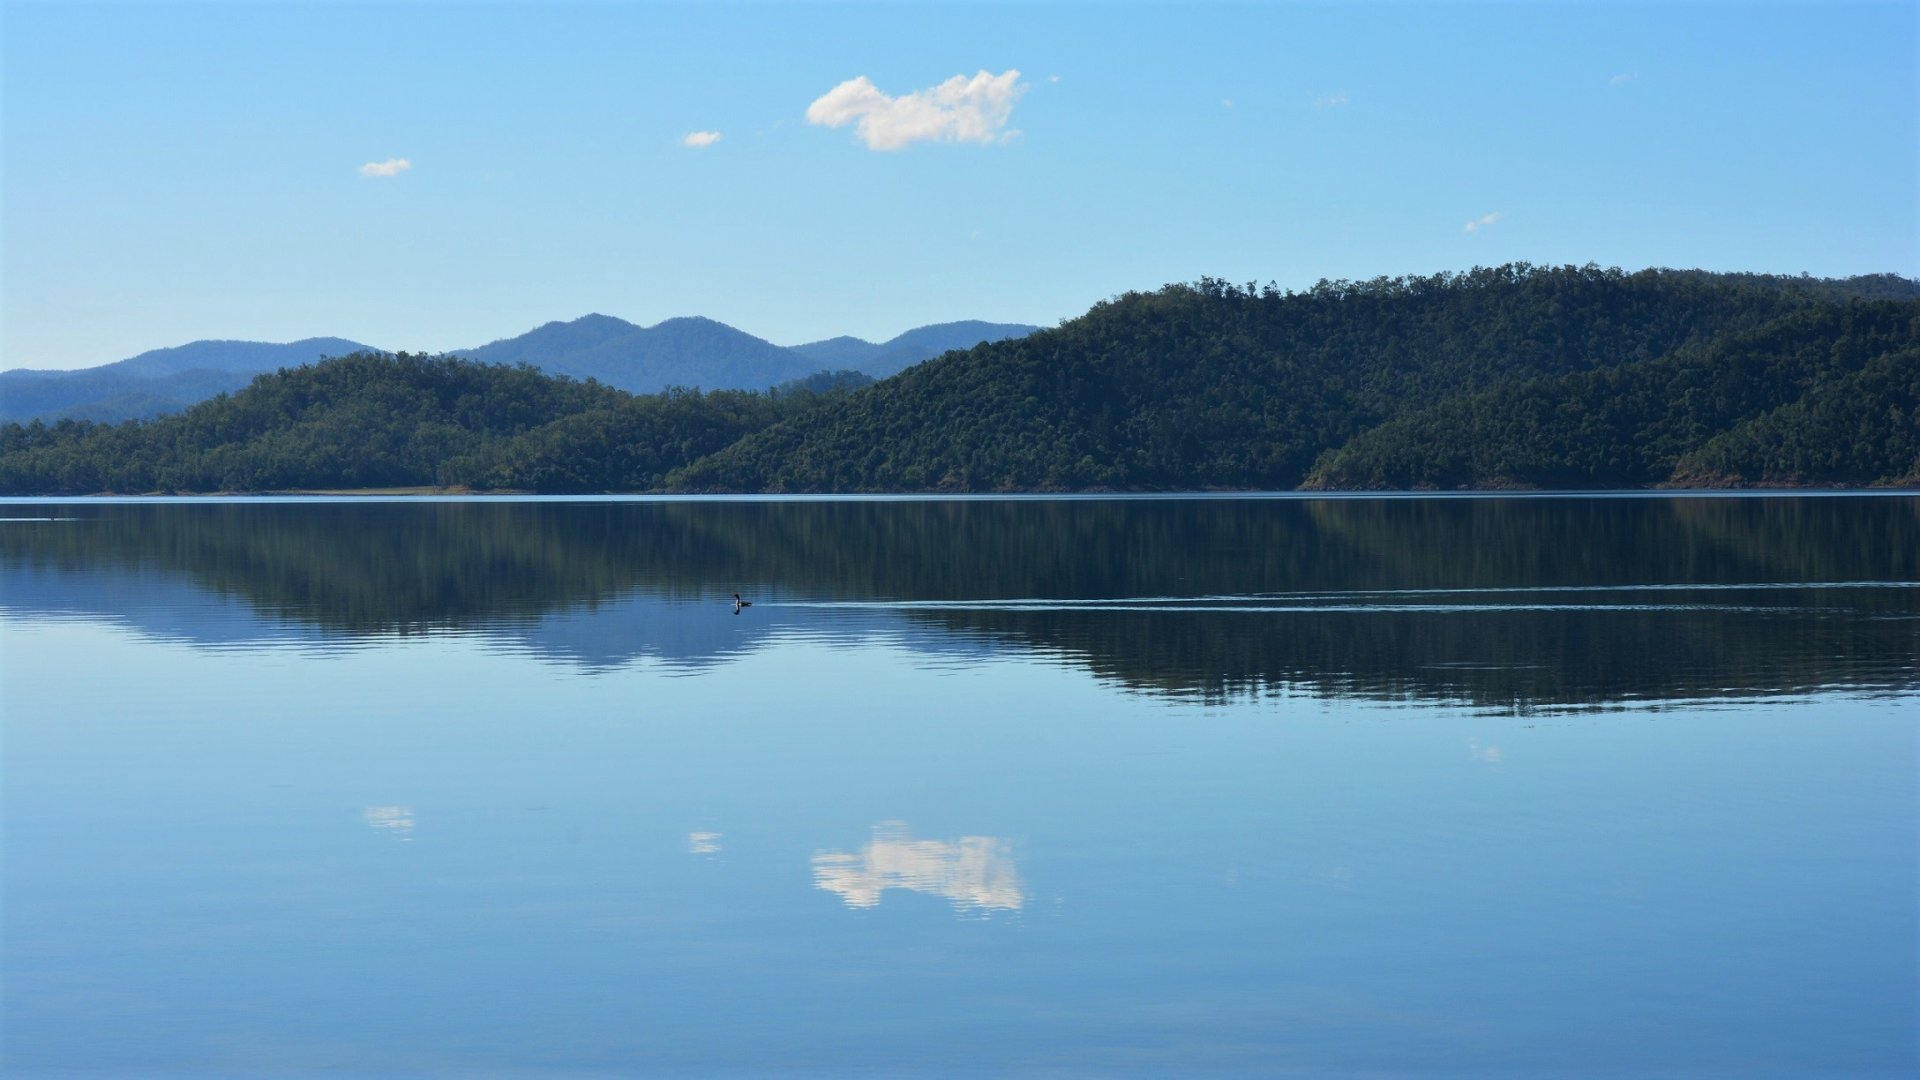 Earth - Lake  Bay Reflection Queensland Australia Mountain Wallpaper